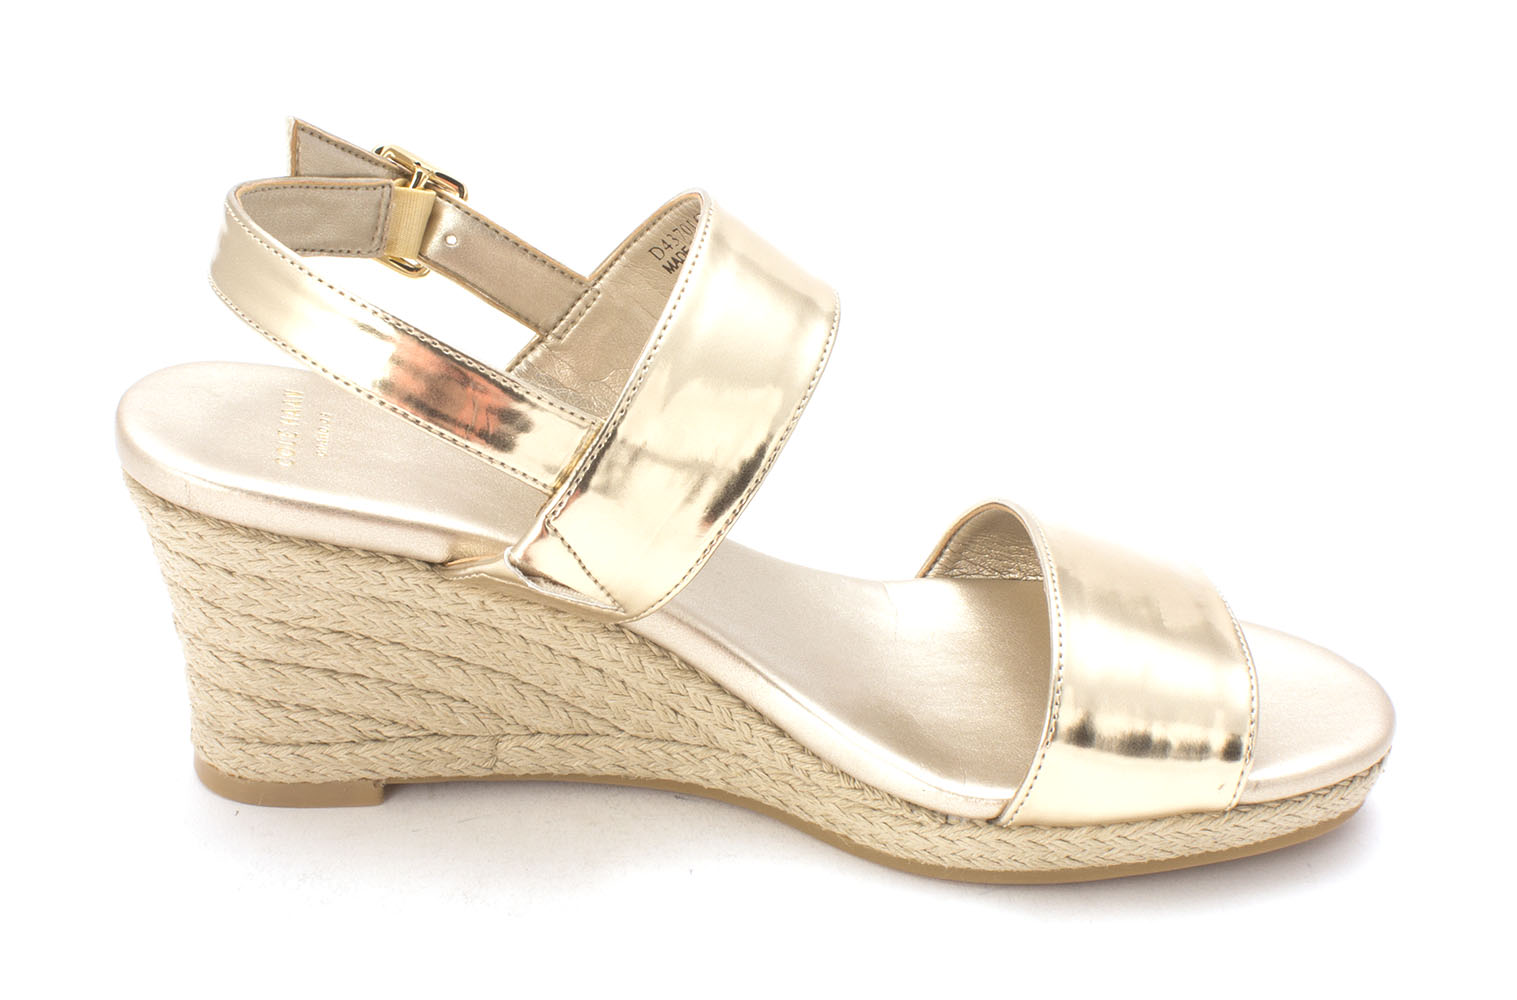 Cole Haan Womens 14A4177 Open Toe Casual Platform Sandals, Soft Gold, Size 6.0